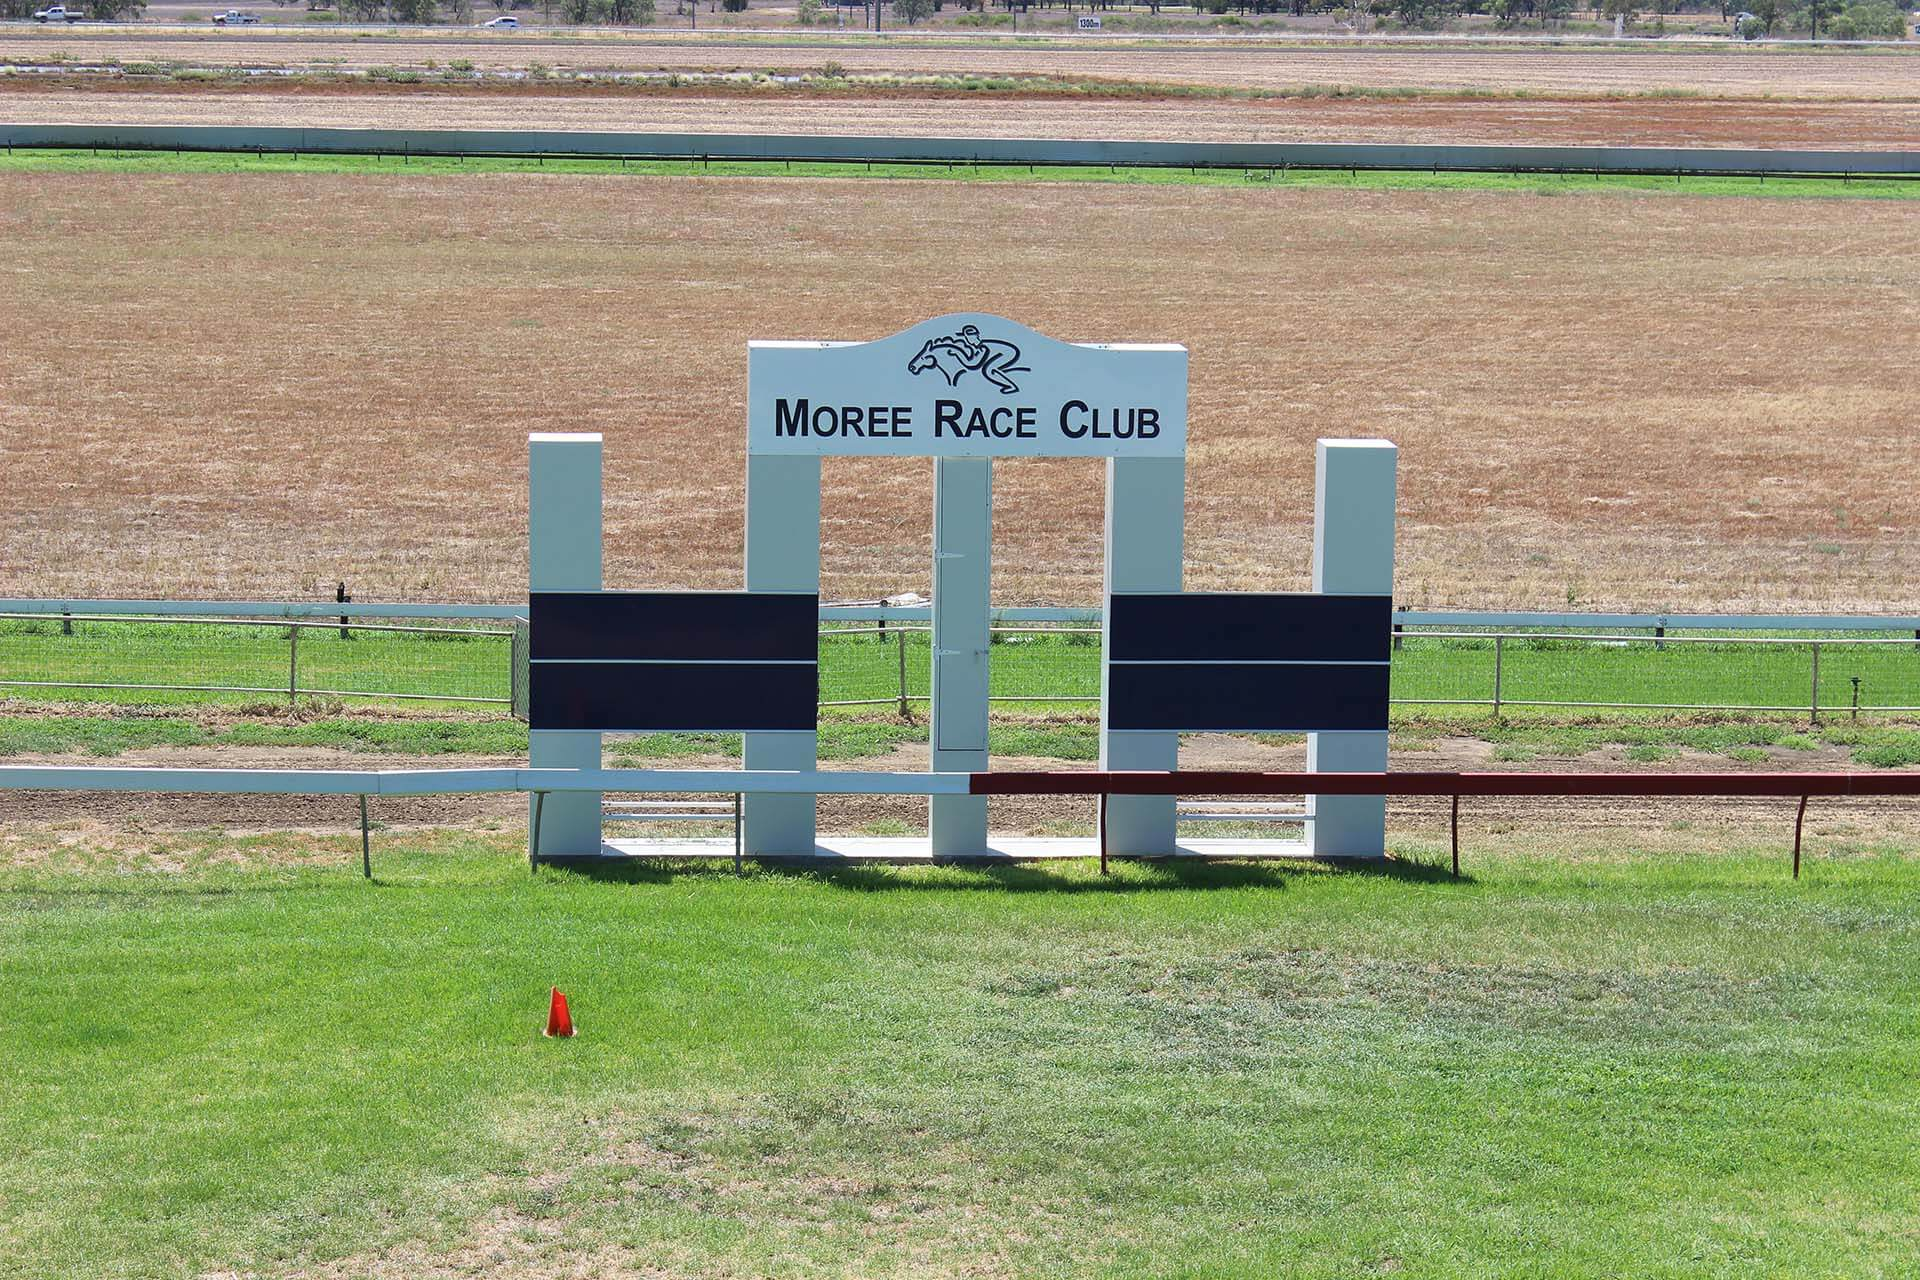 Moree Race Club